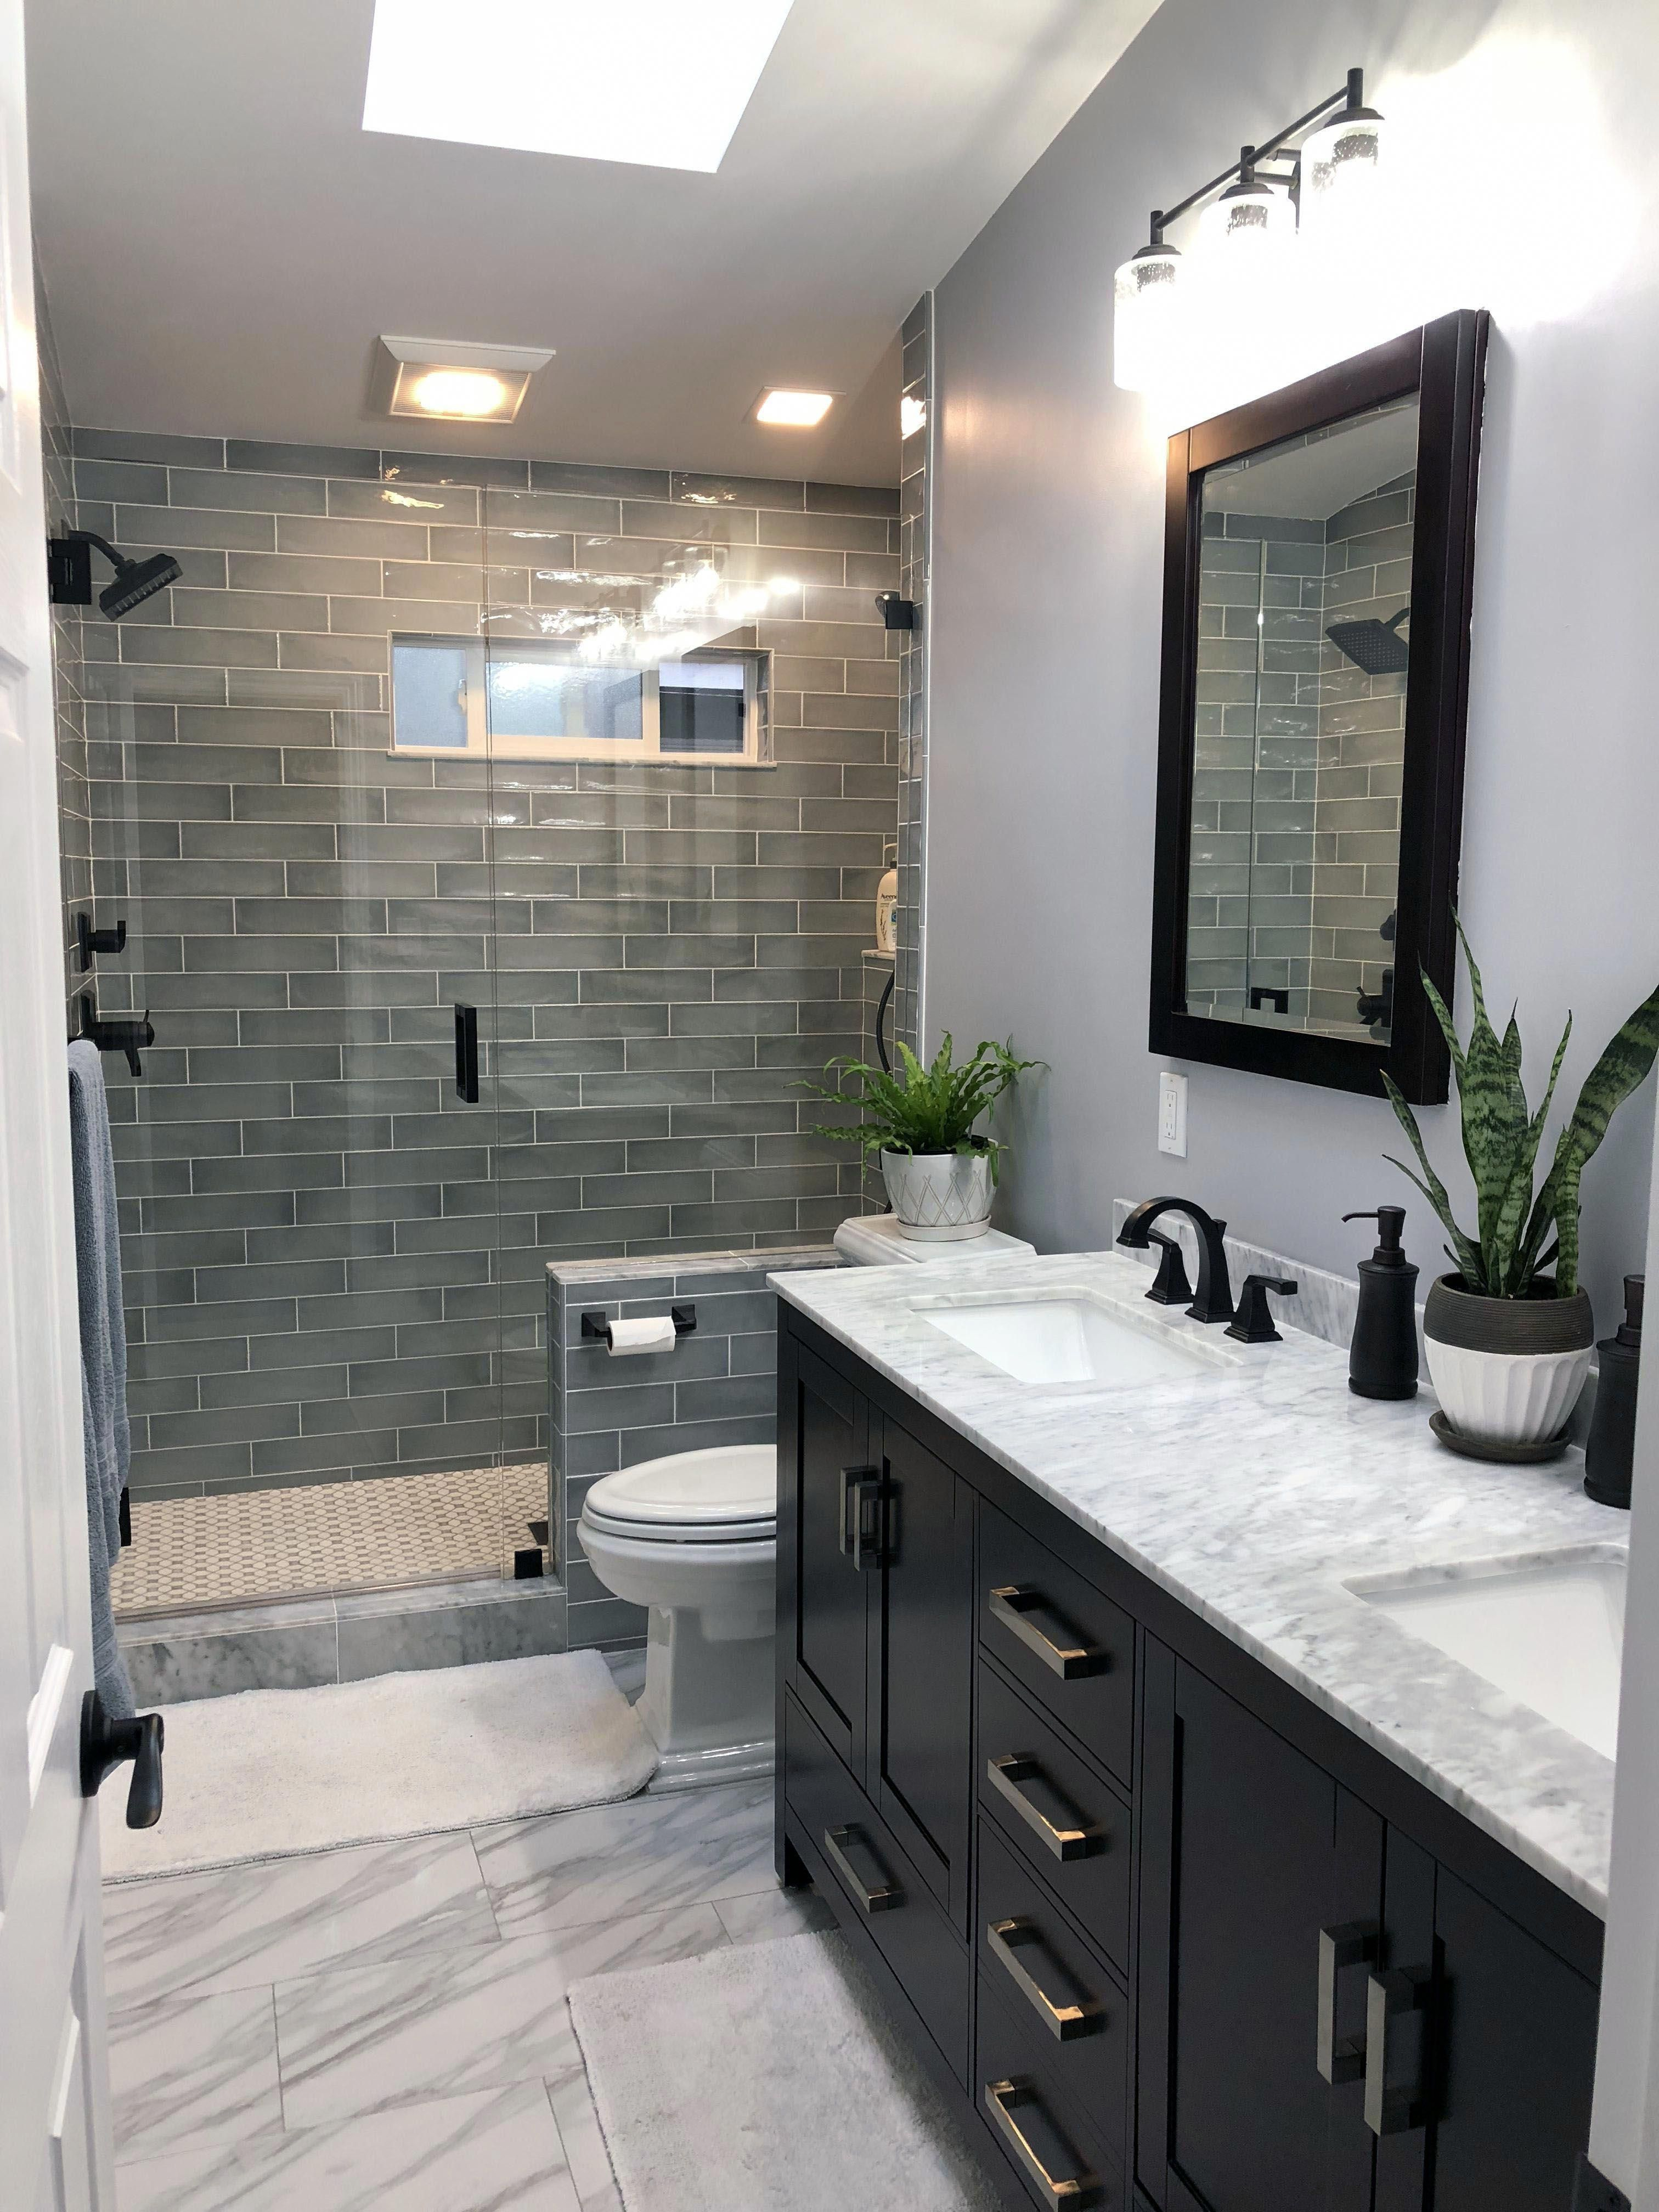 As Mentioned Above Light Colors Help Brighten Up A Space White Being One Of The Lightest Small Bathroom Remodel Bathroom Tile Designs Bathroom Remodel Master